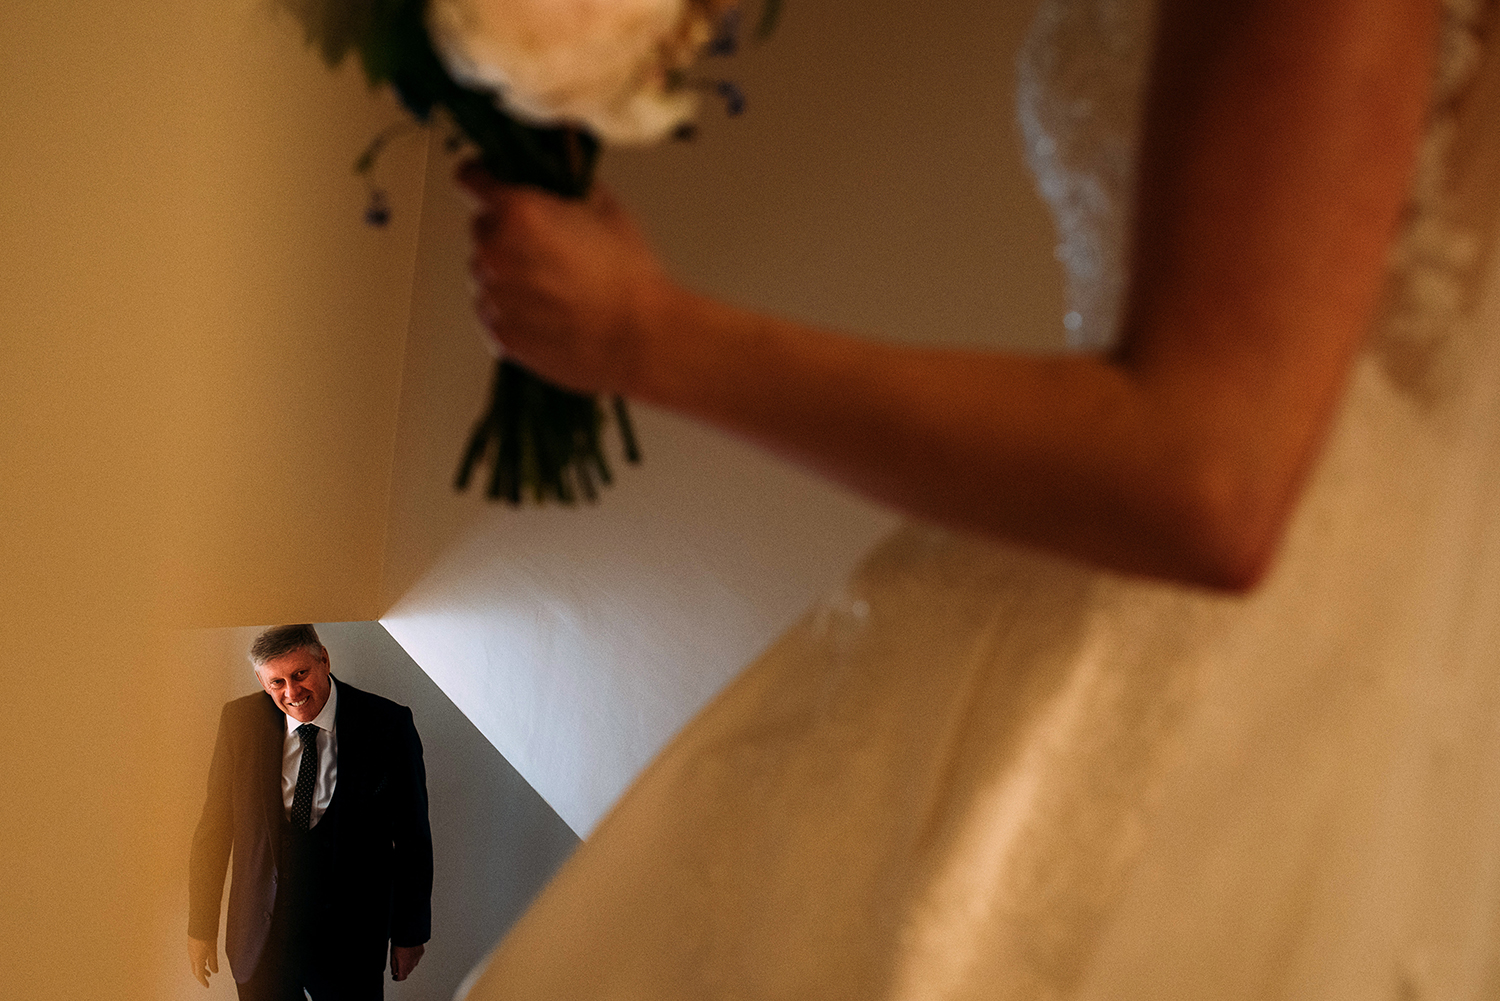 Bride walking down the stairs. Her fathers reaction can be seen in the bottom left of the frame